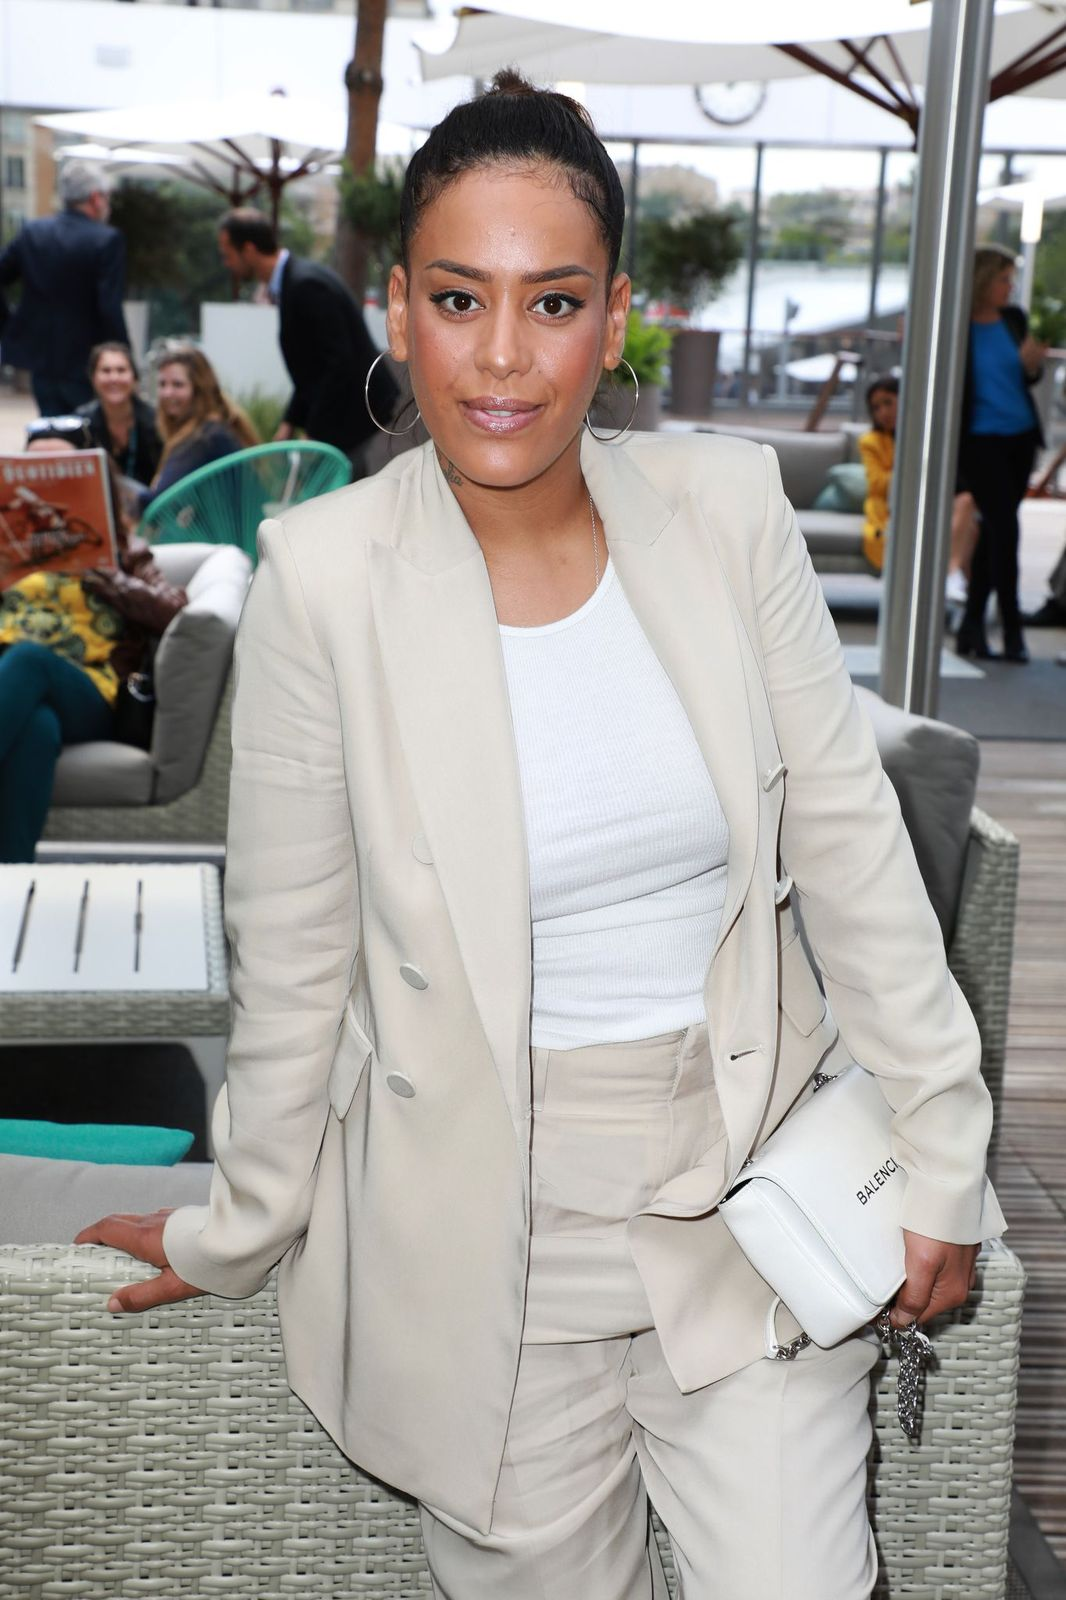 La chanteuse Amel Bent. | Photo : Getty Images.